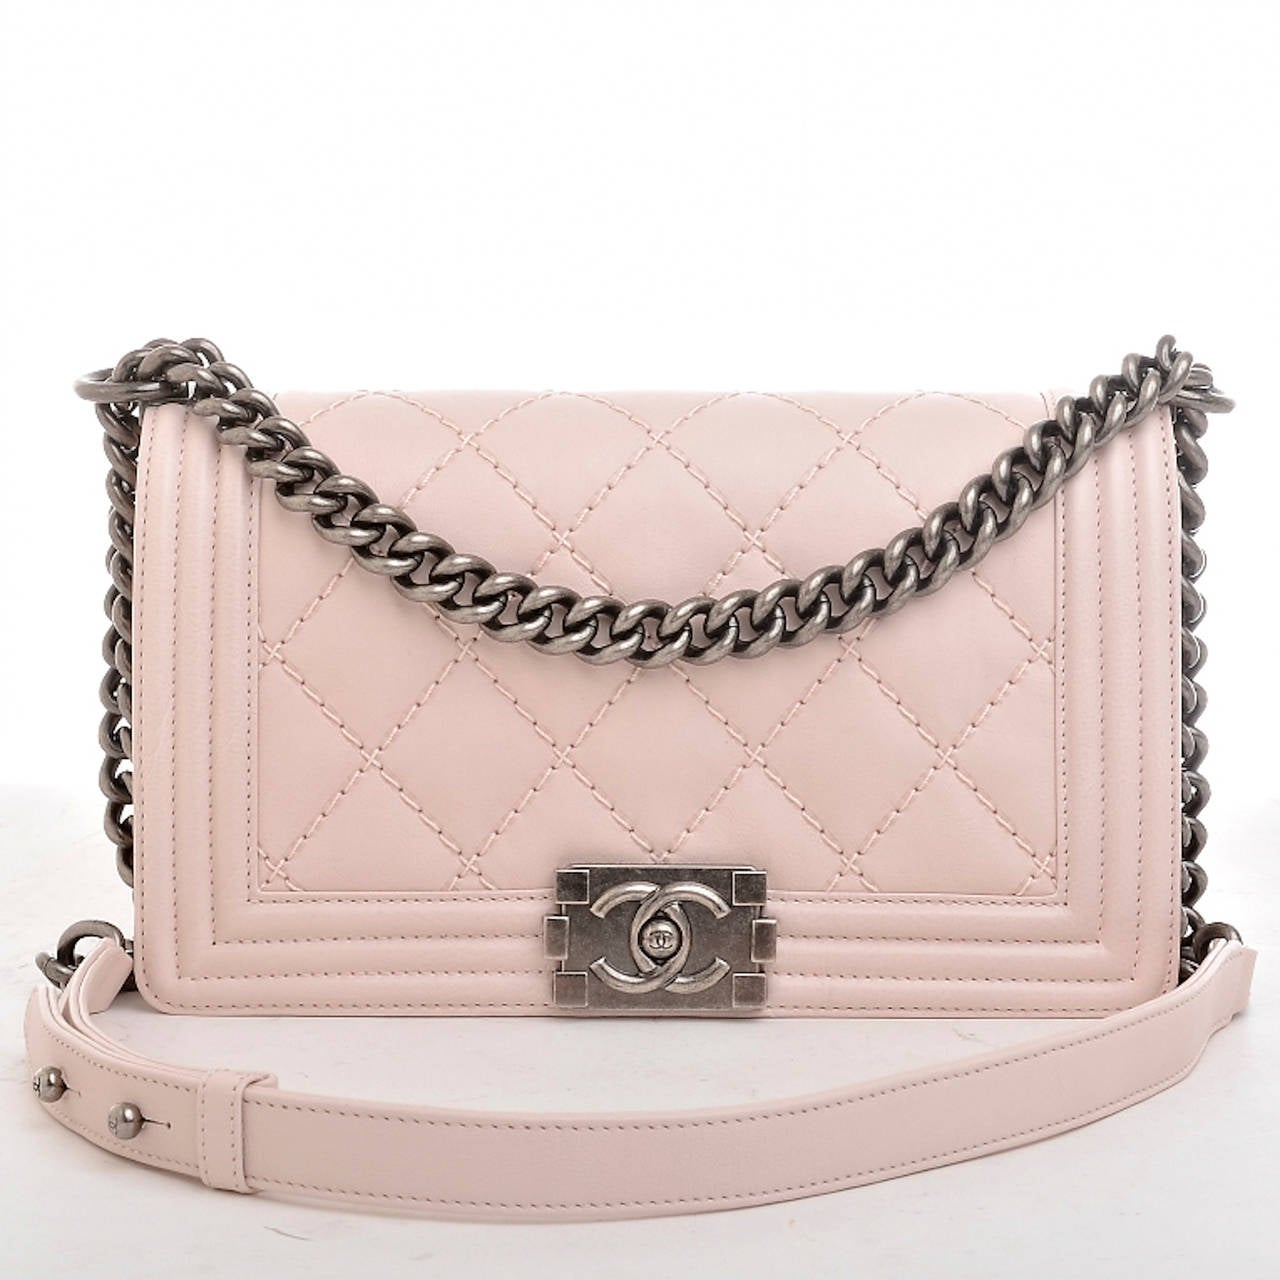 Chanel Baby Pink Quilted Medium Boy Bag at 1stdibs 63188303046e2